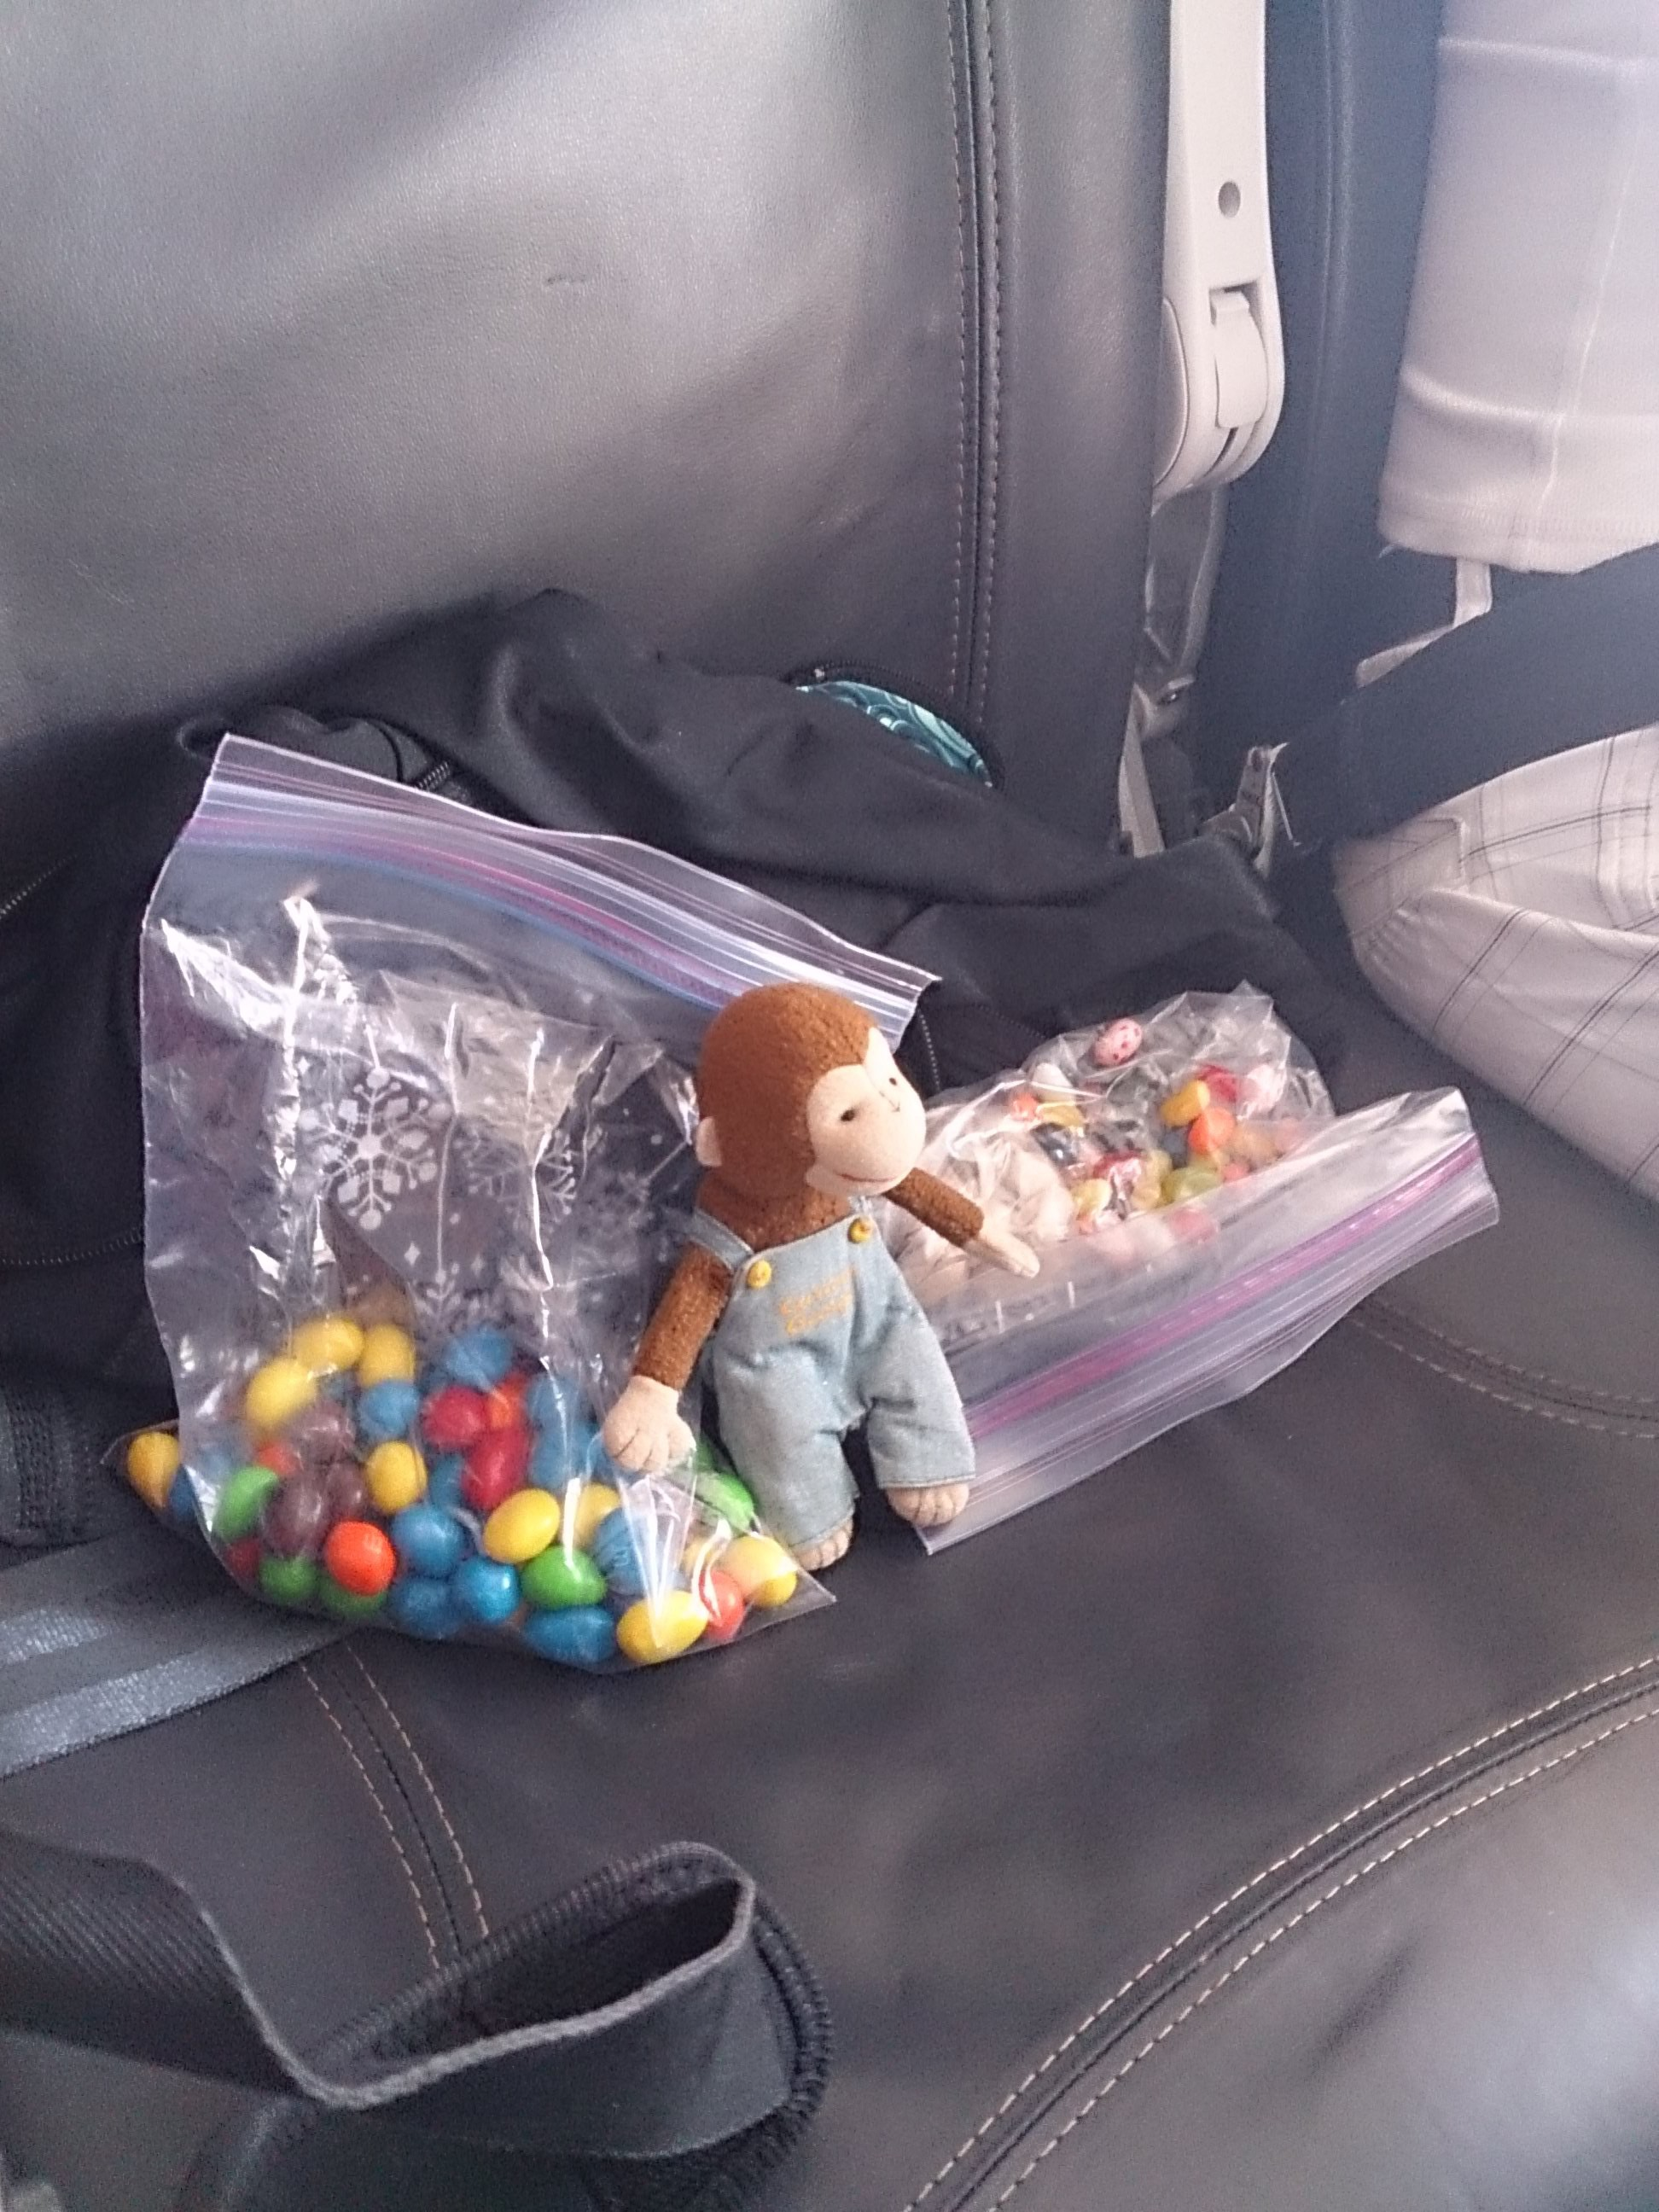 1 George loved his seat on Alaska Airlines – lots of leg room! And ...